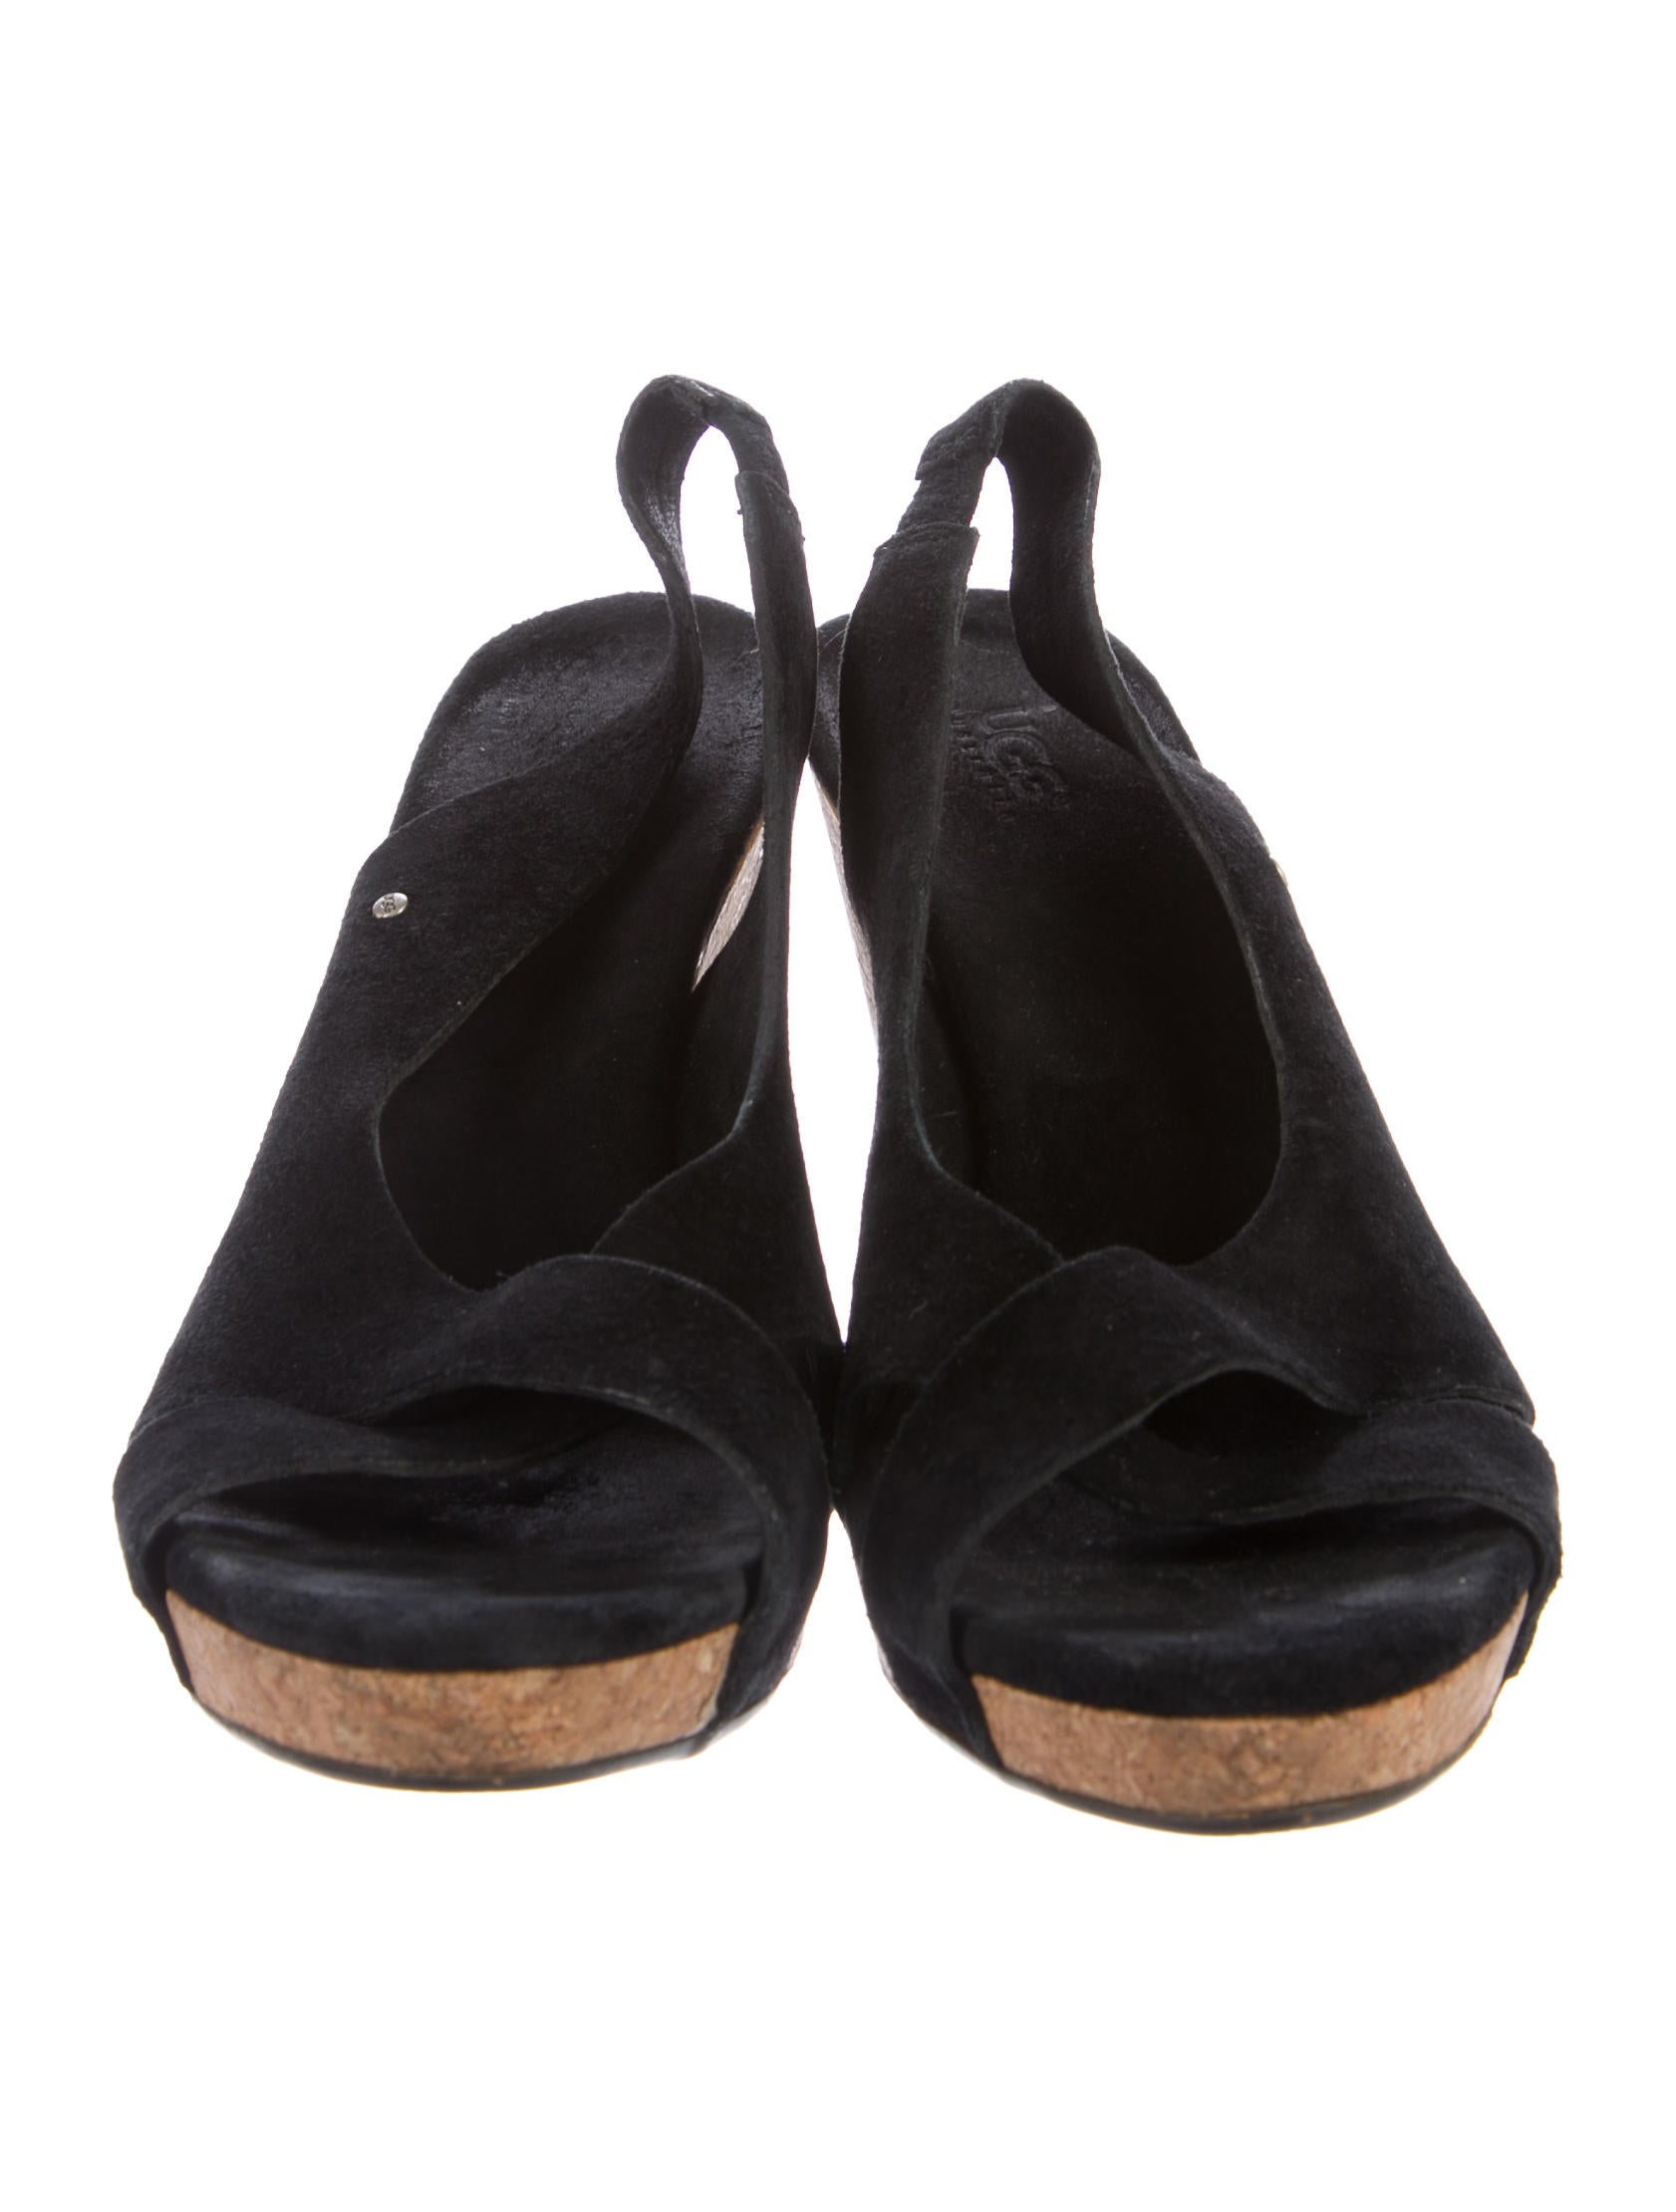 Find wedges at ShopStyle. Shop the latest collection of wedges from the most popular stores - all in one place. All / Women / Shoes / Wedges Boots K Evening Shoes Flats K See by Chloe Leather Espadrille Wedge Sandals - Black $ Get a Sale Alert at NET-A-PORTER.